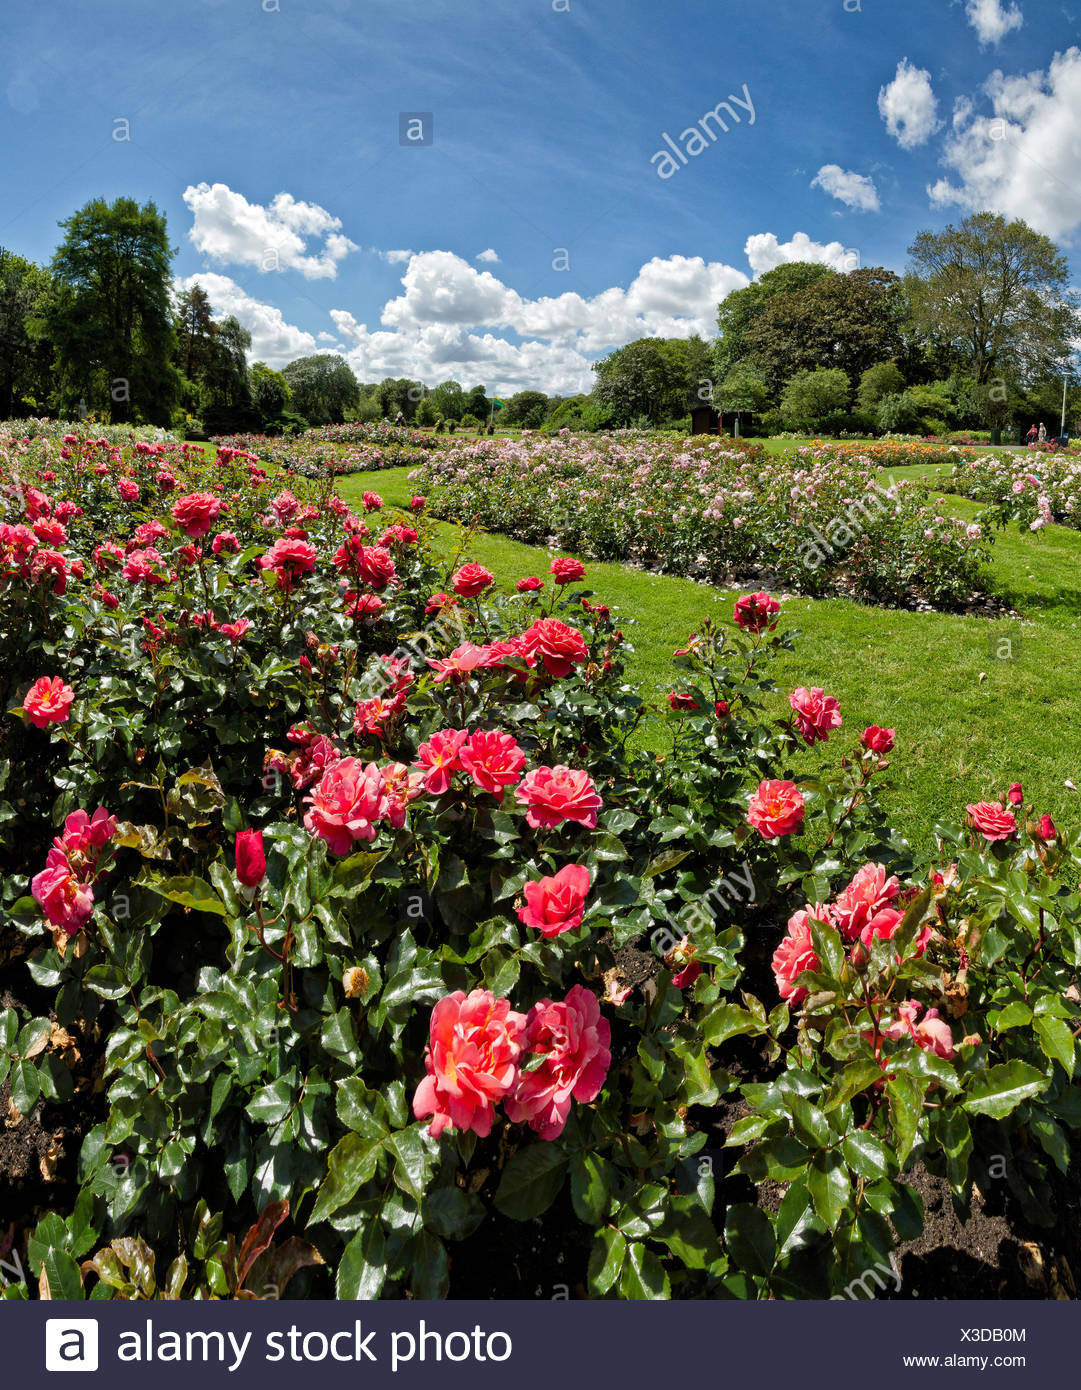 Holland, Europe, Koog aan de Zaan, Scheveningen, Zuid-Holland, Netherlands, landscape, flowers, summer, Rose garden - Stock Image